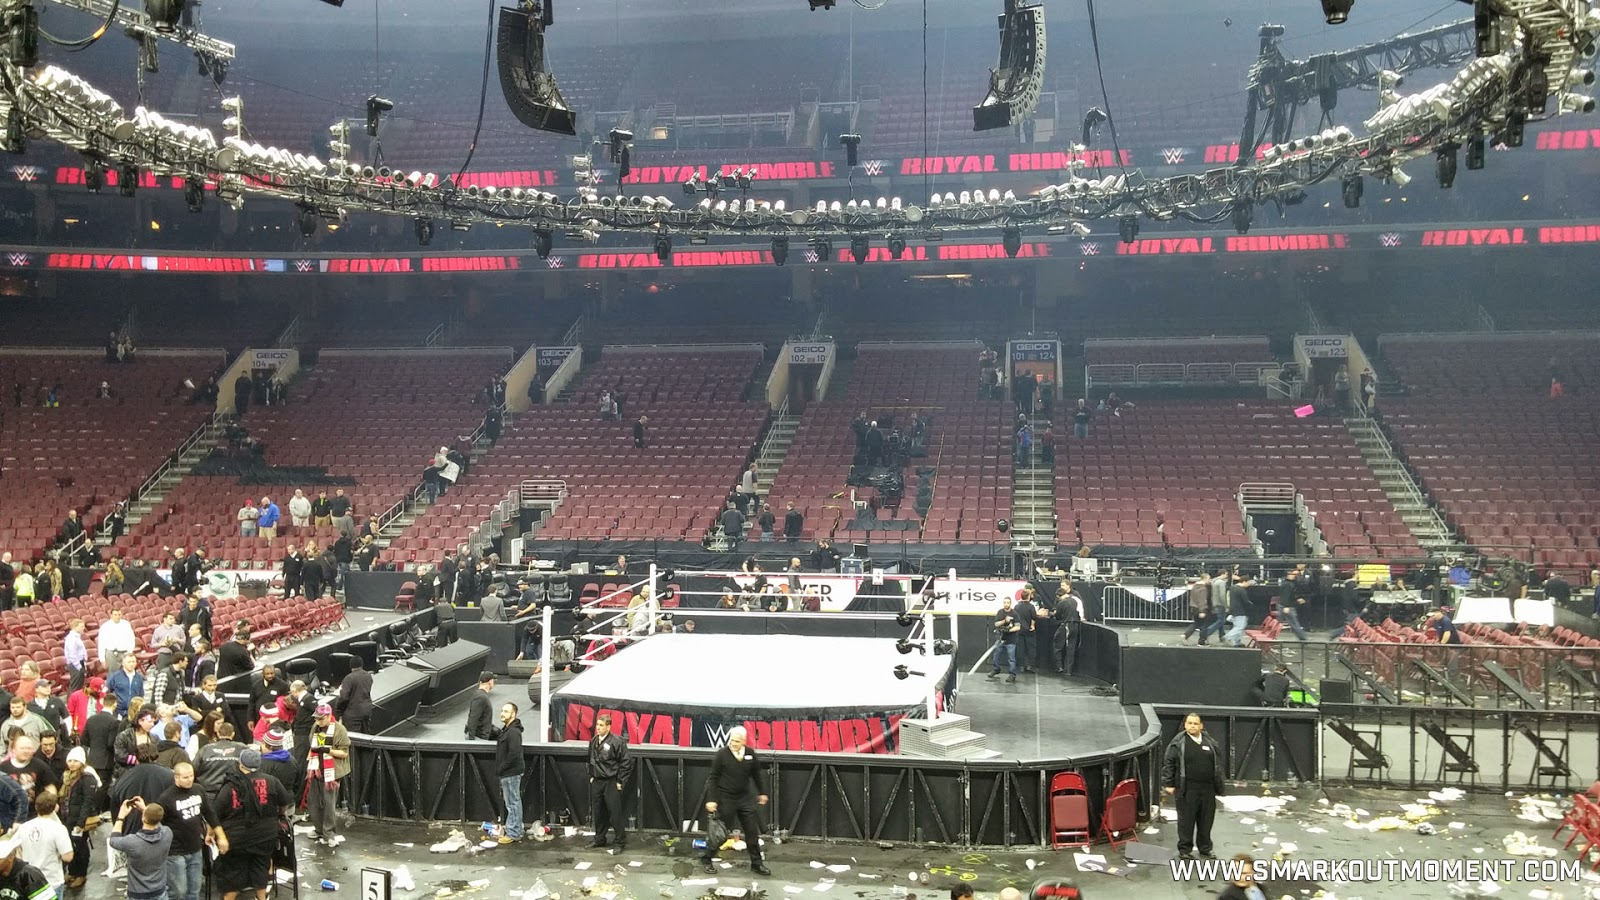 WWE Royal Rumble 2015 garbage trash